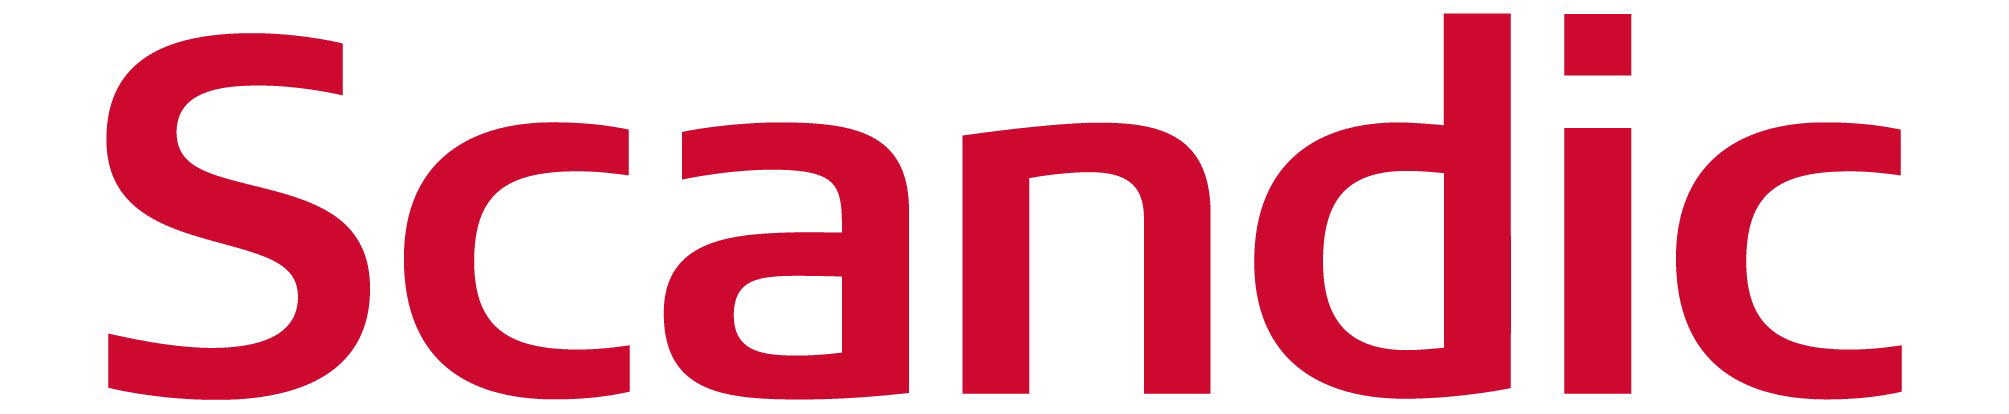 Scandic logo red.jpg